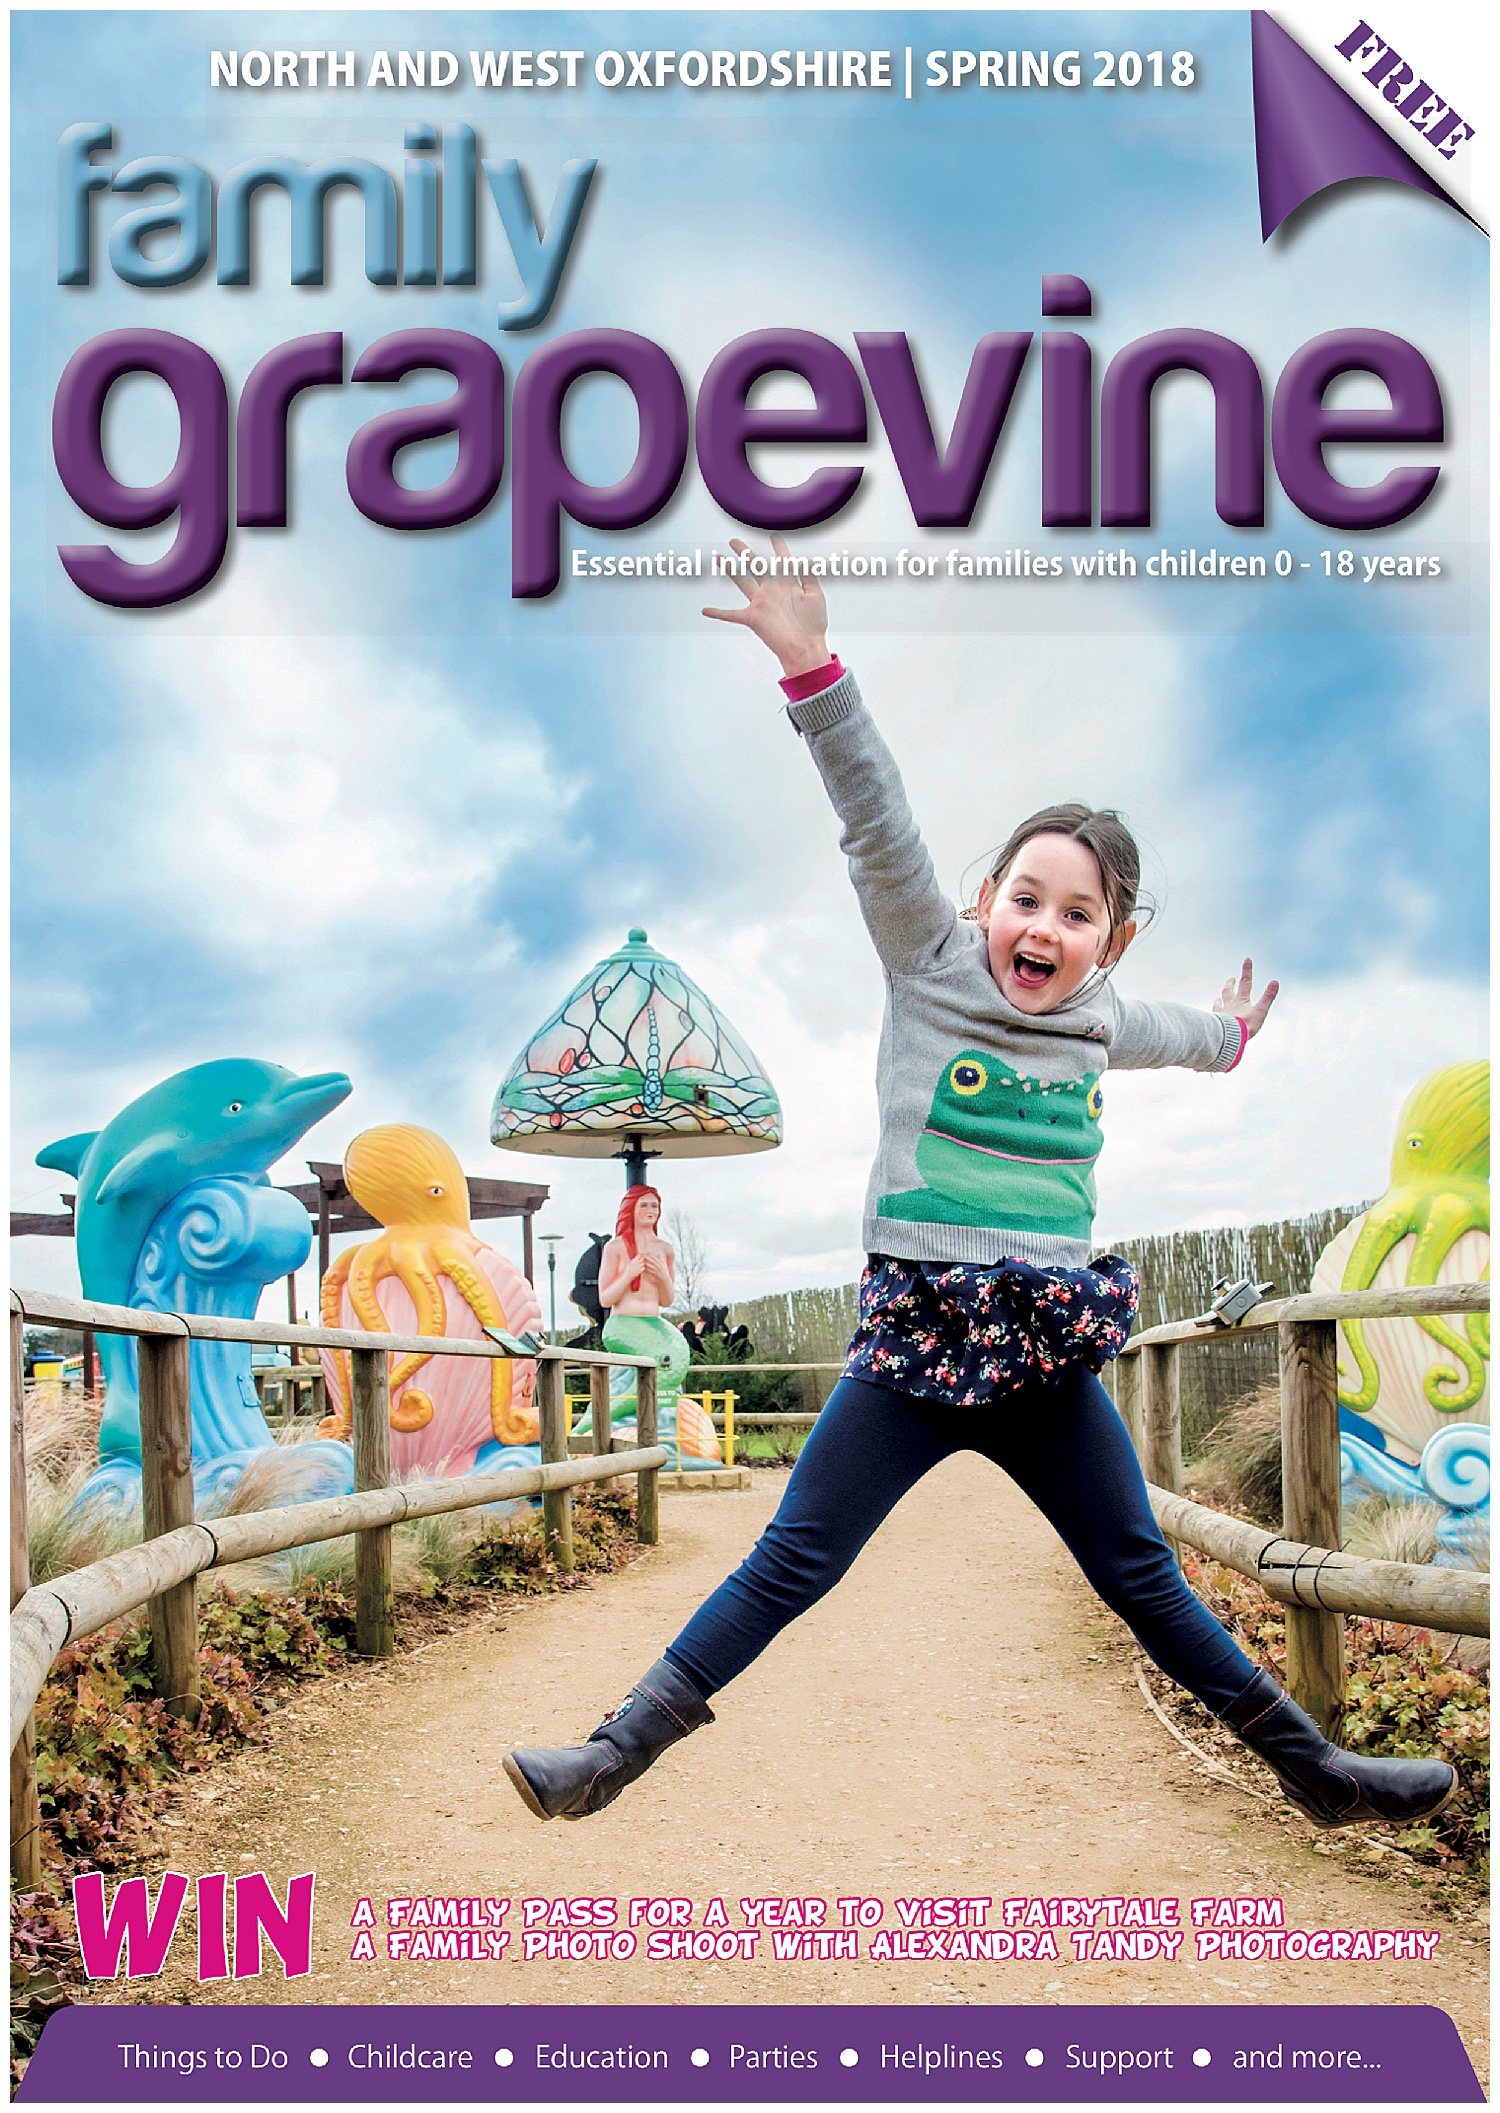 Magazine front cover by Alexandra Tandy Photography - Marketing Photographer